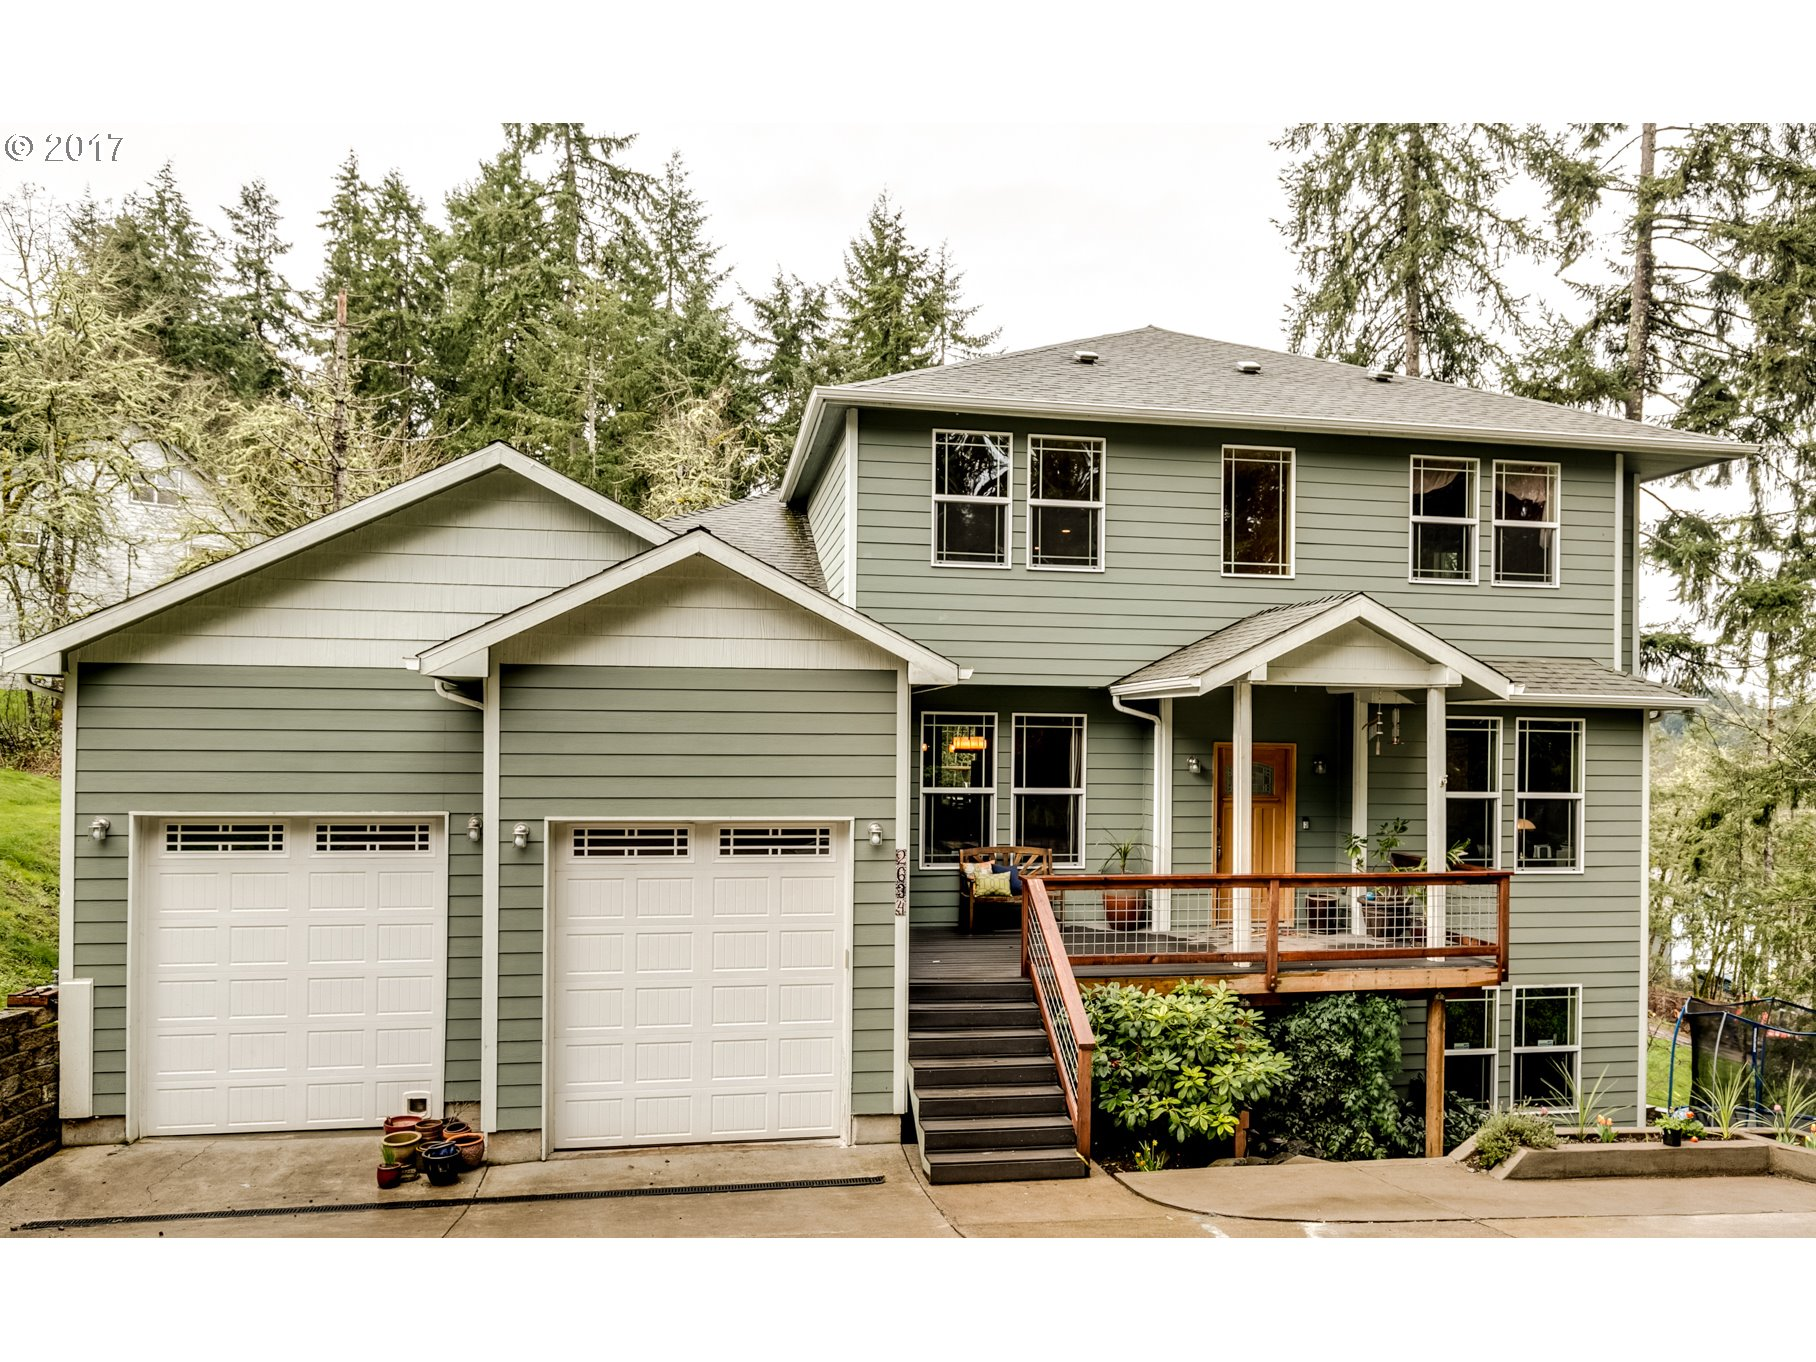 2634 W 28TH AVE, Eugene, OR 97405